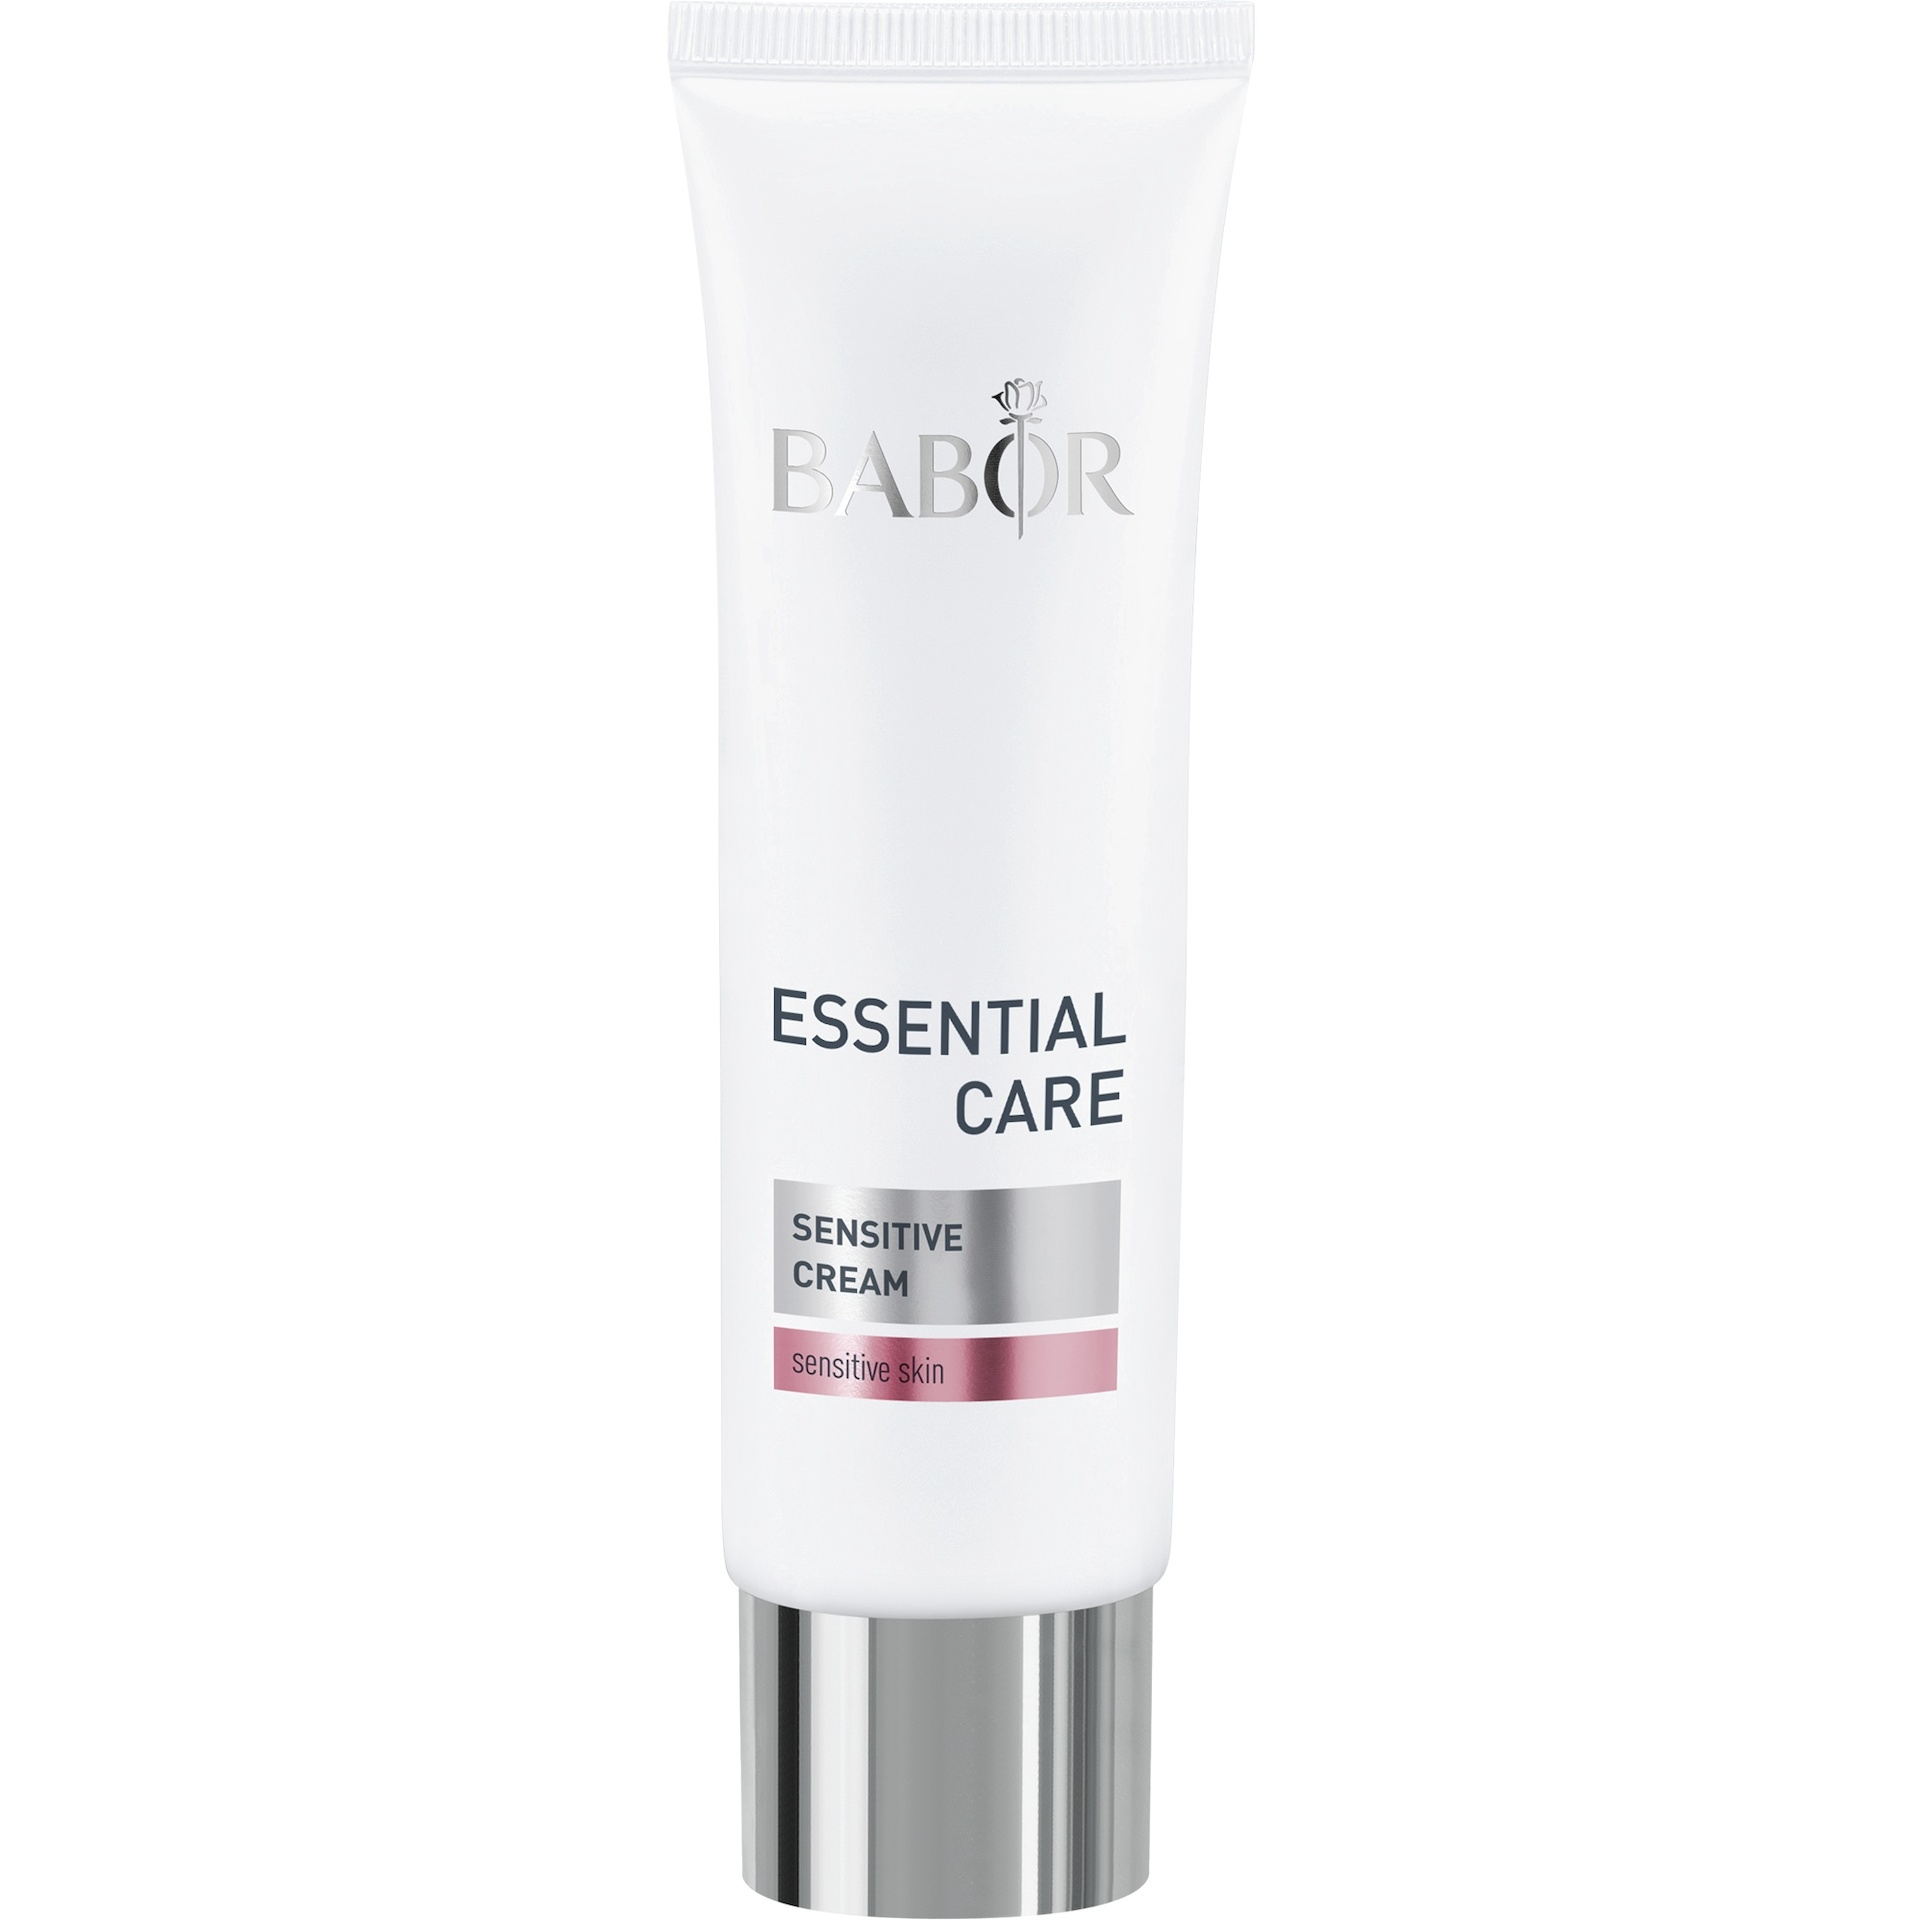 Essential Care Sensitive Cream